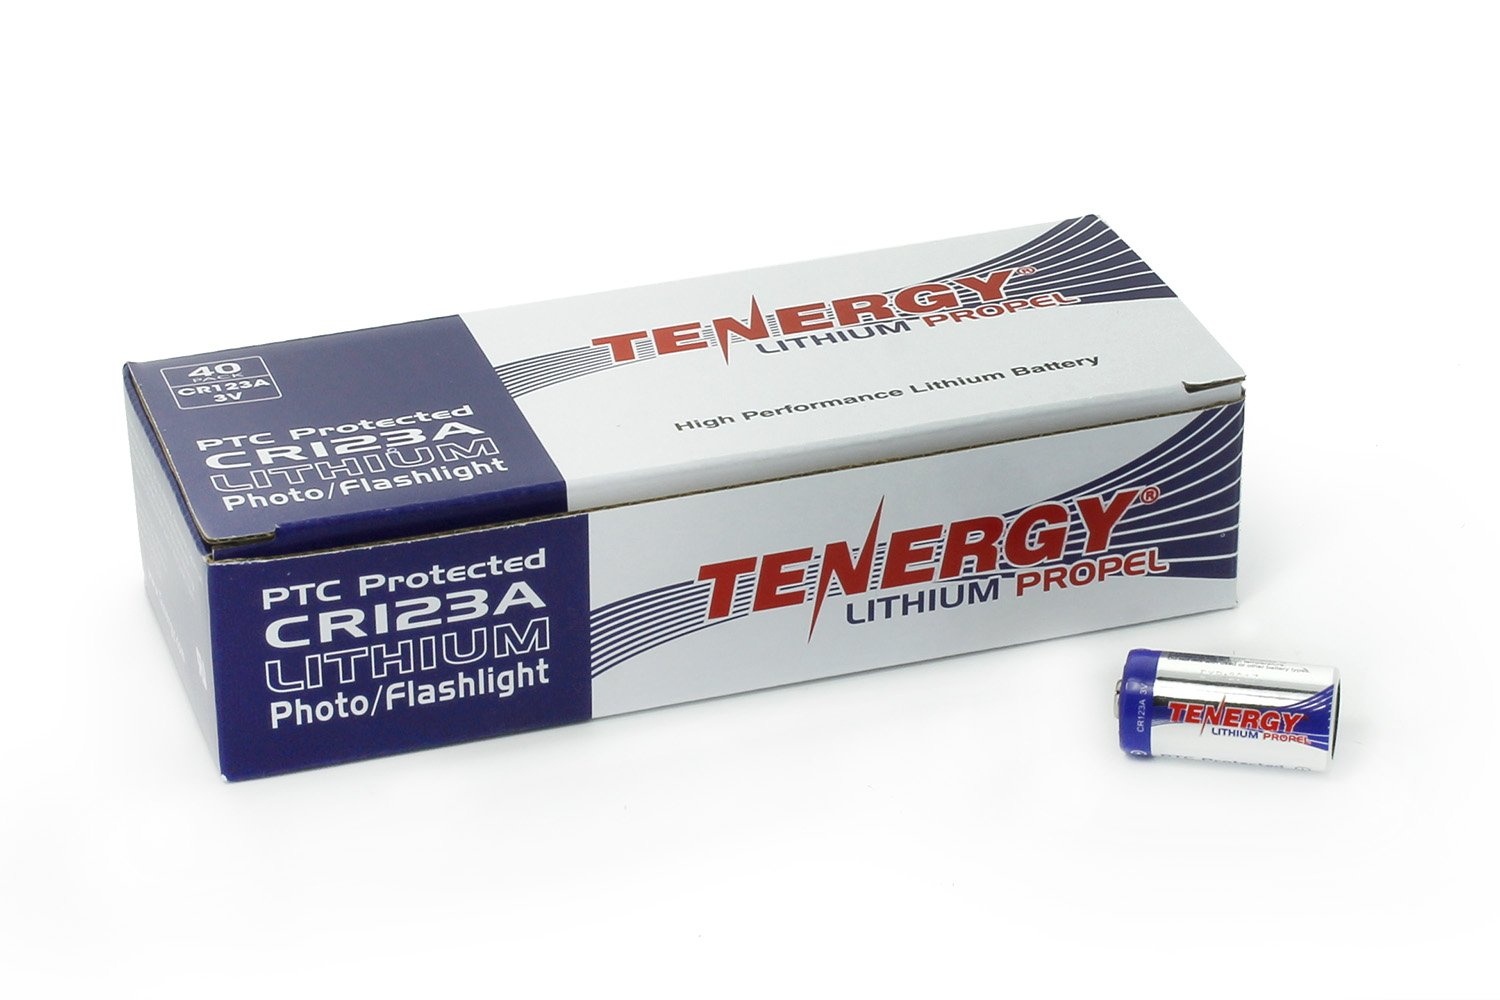 Tenergy Propel 1500mAh 3V CR123A Lithium Battery, High Performance CR123A Cell Batteries PTC Protected for Cameras, Flashlight Replacement CR123A Batteries, 40-Pack by Tenergy (Image #7)